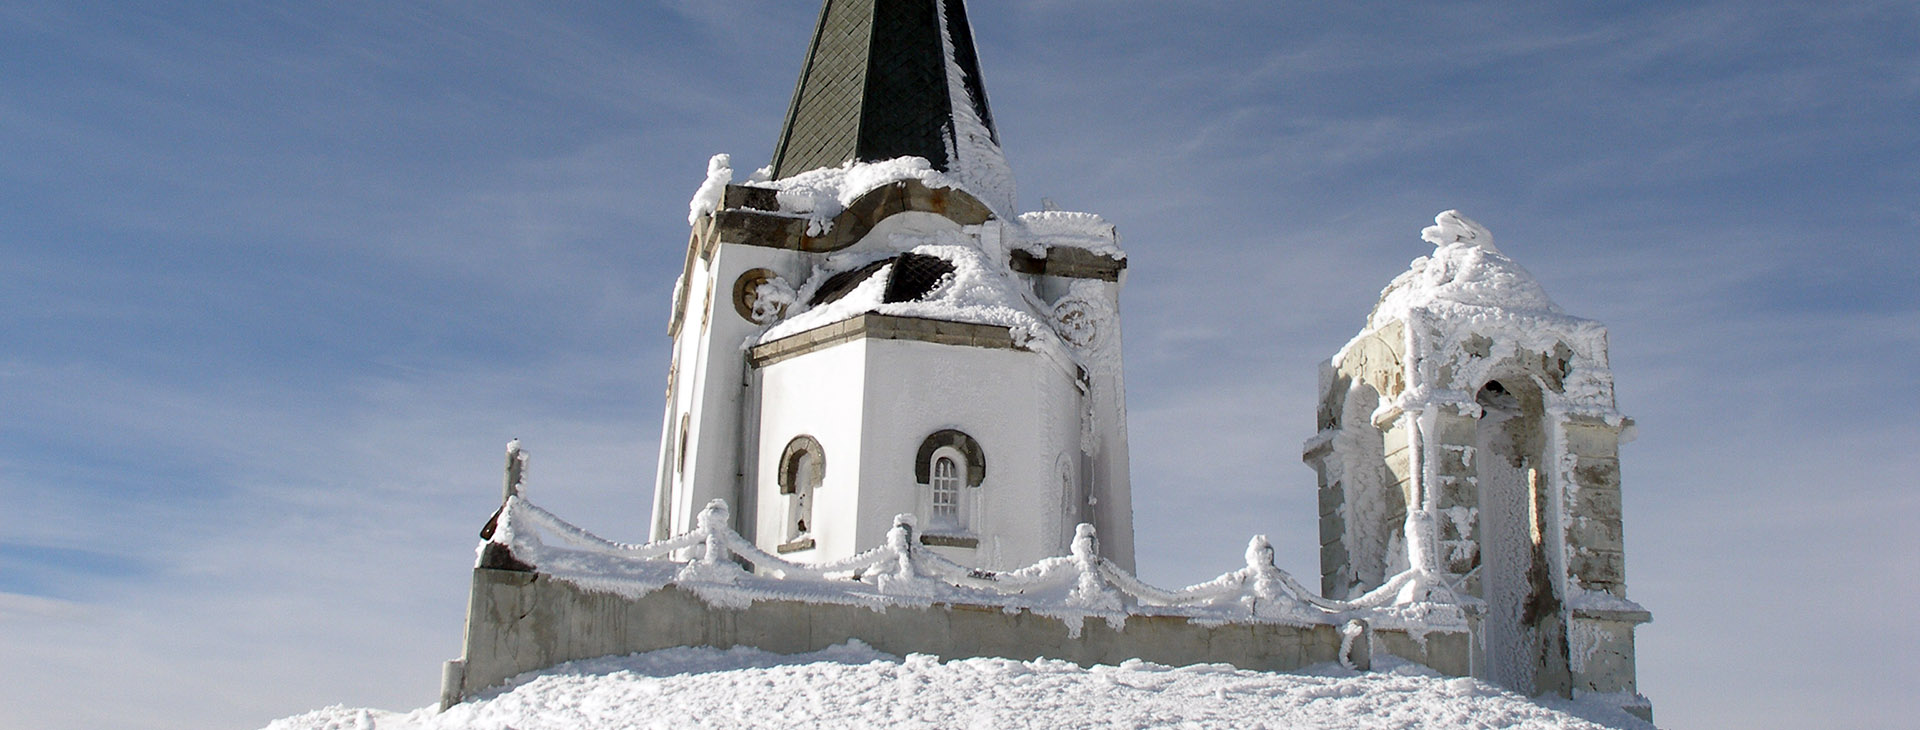 Profitis Ilias church at the peak of Mt. Kaimaktsalan, Pella